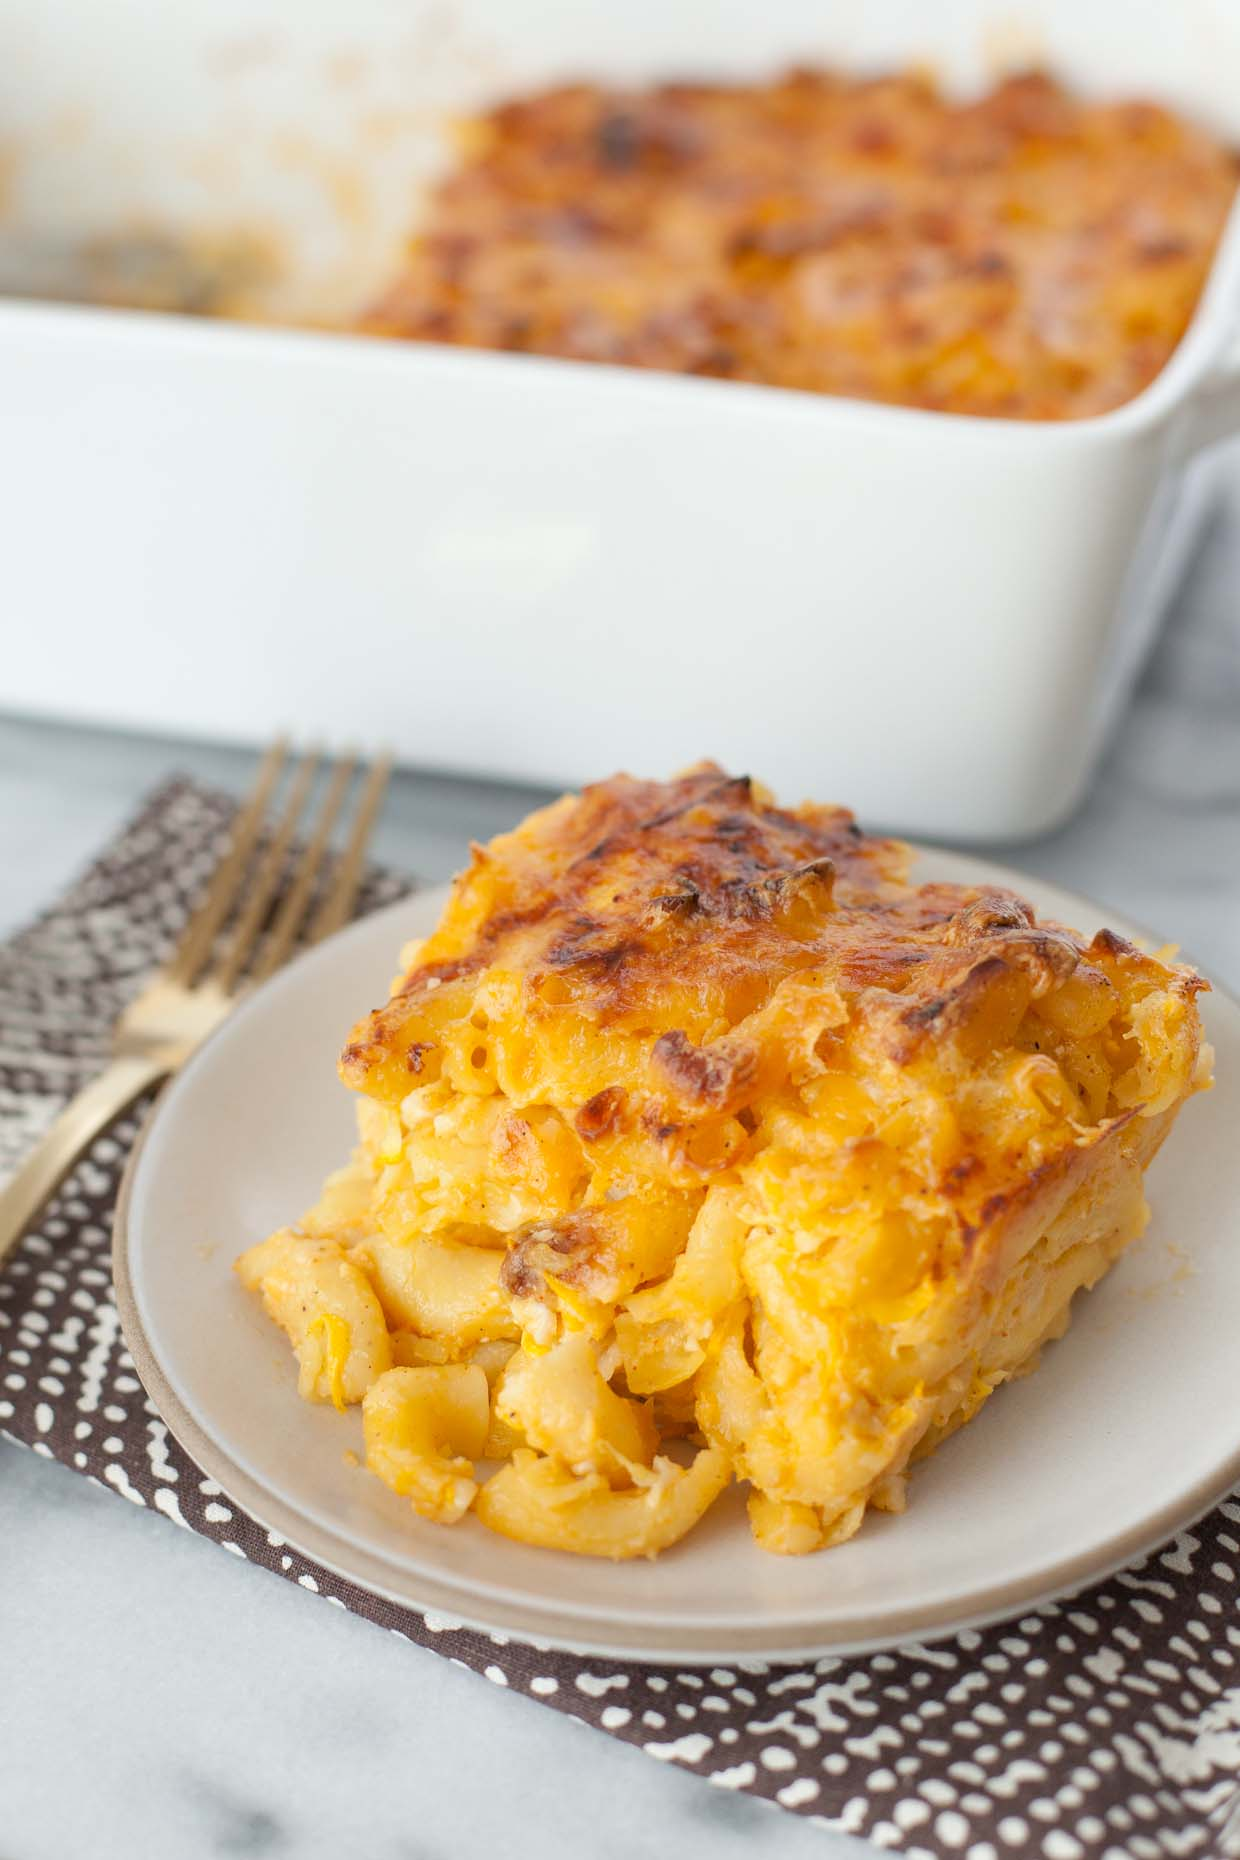 Macaroni and Cheese with hidden vegetables